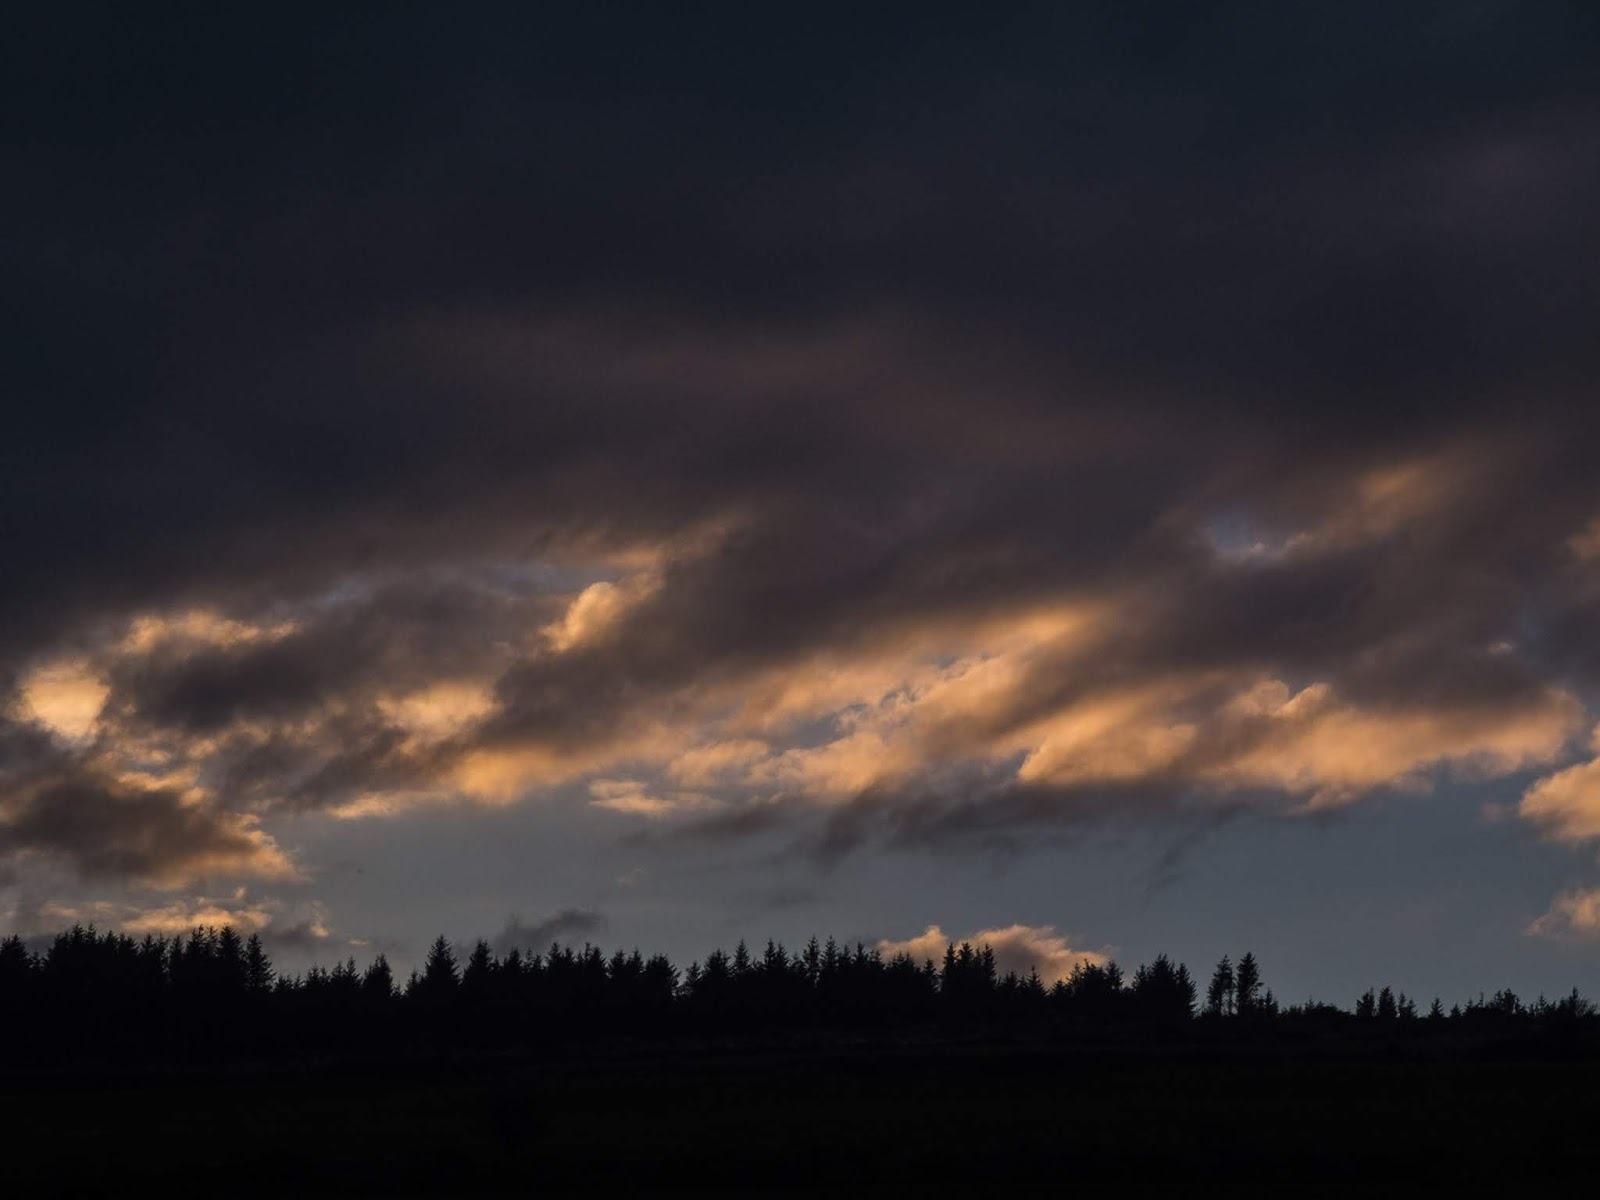 Dark sunset clouds over a forest in the Boggeragh Mountains in North Cork.